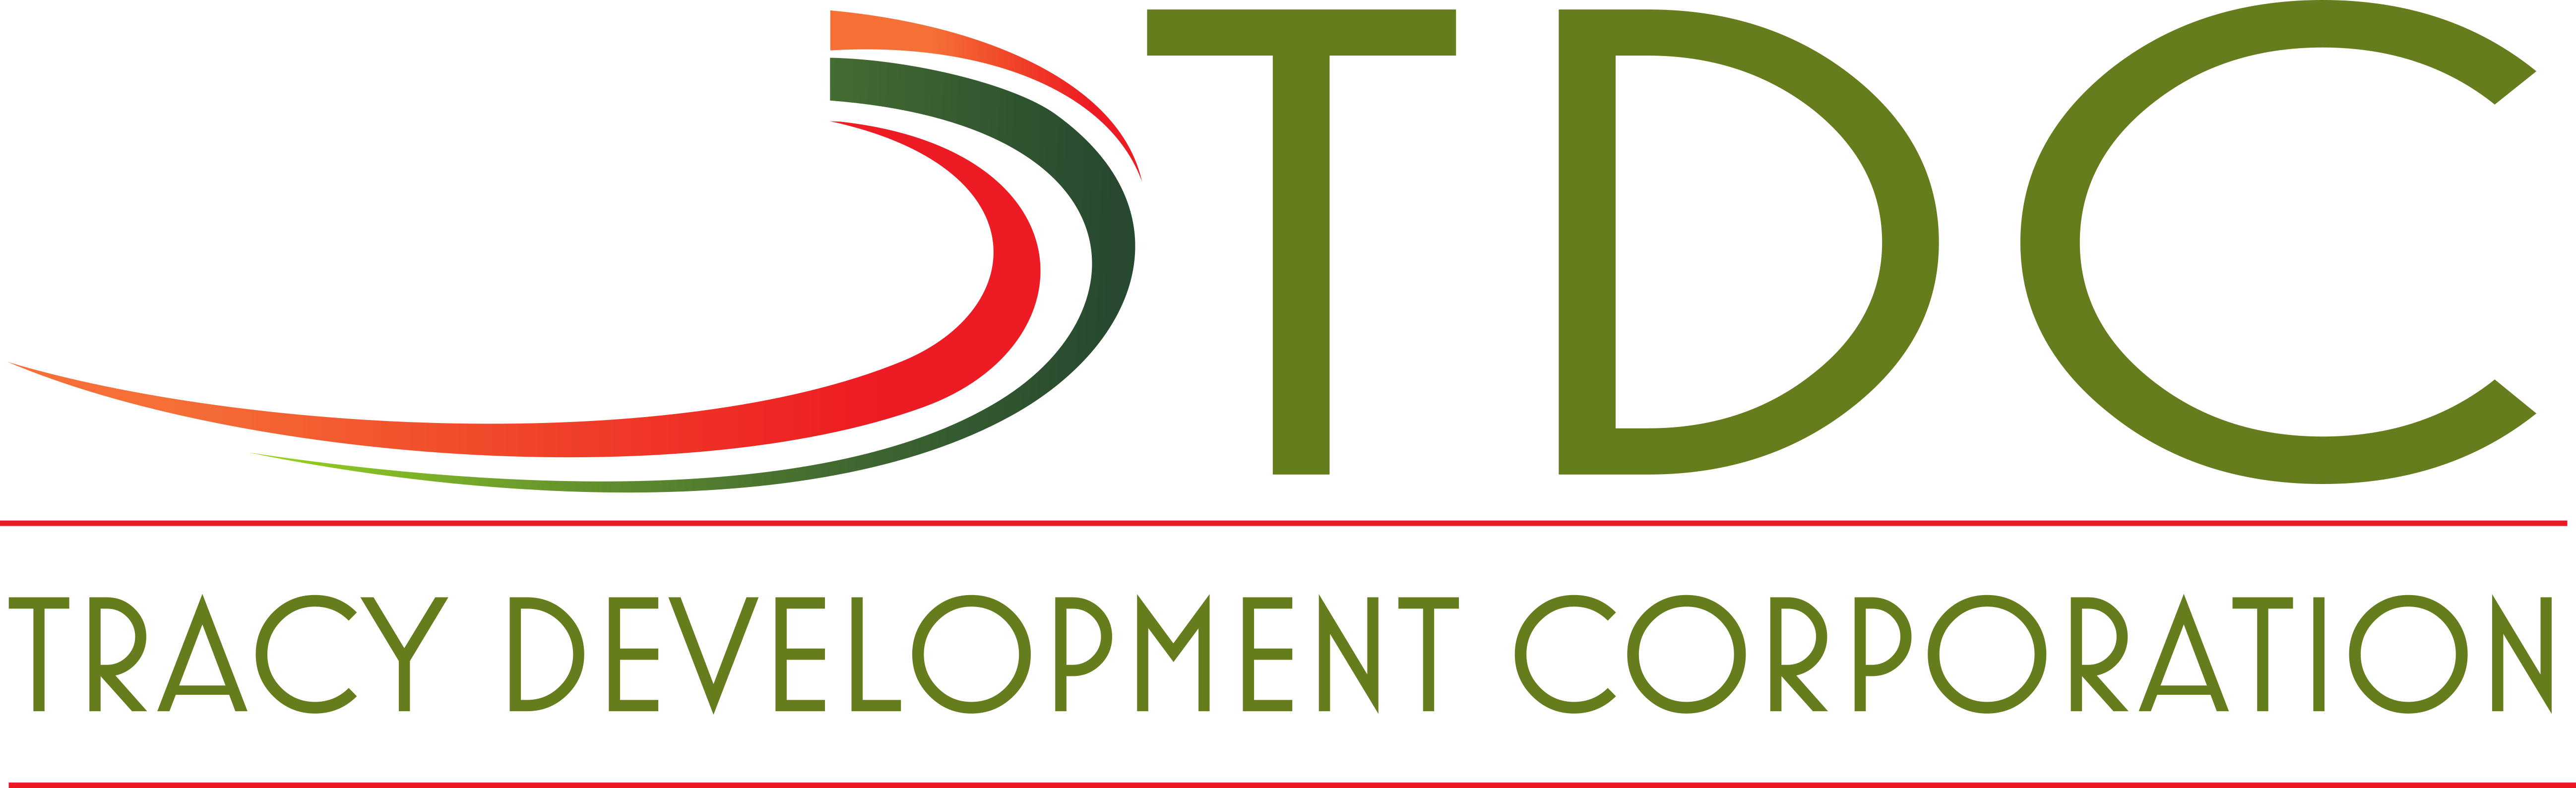 Tracy Development Corporation